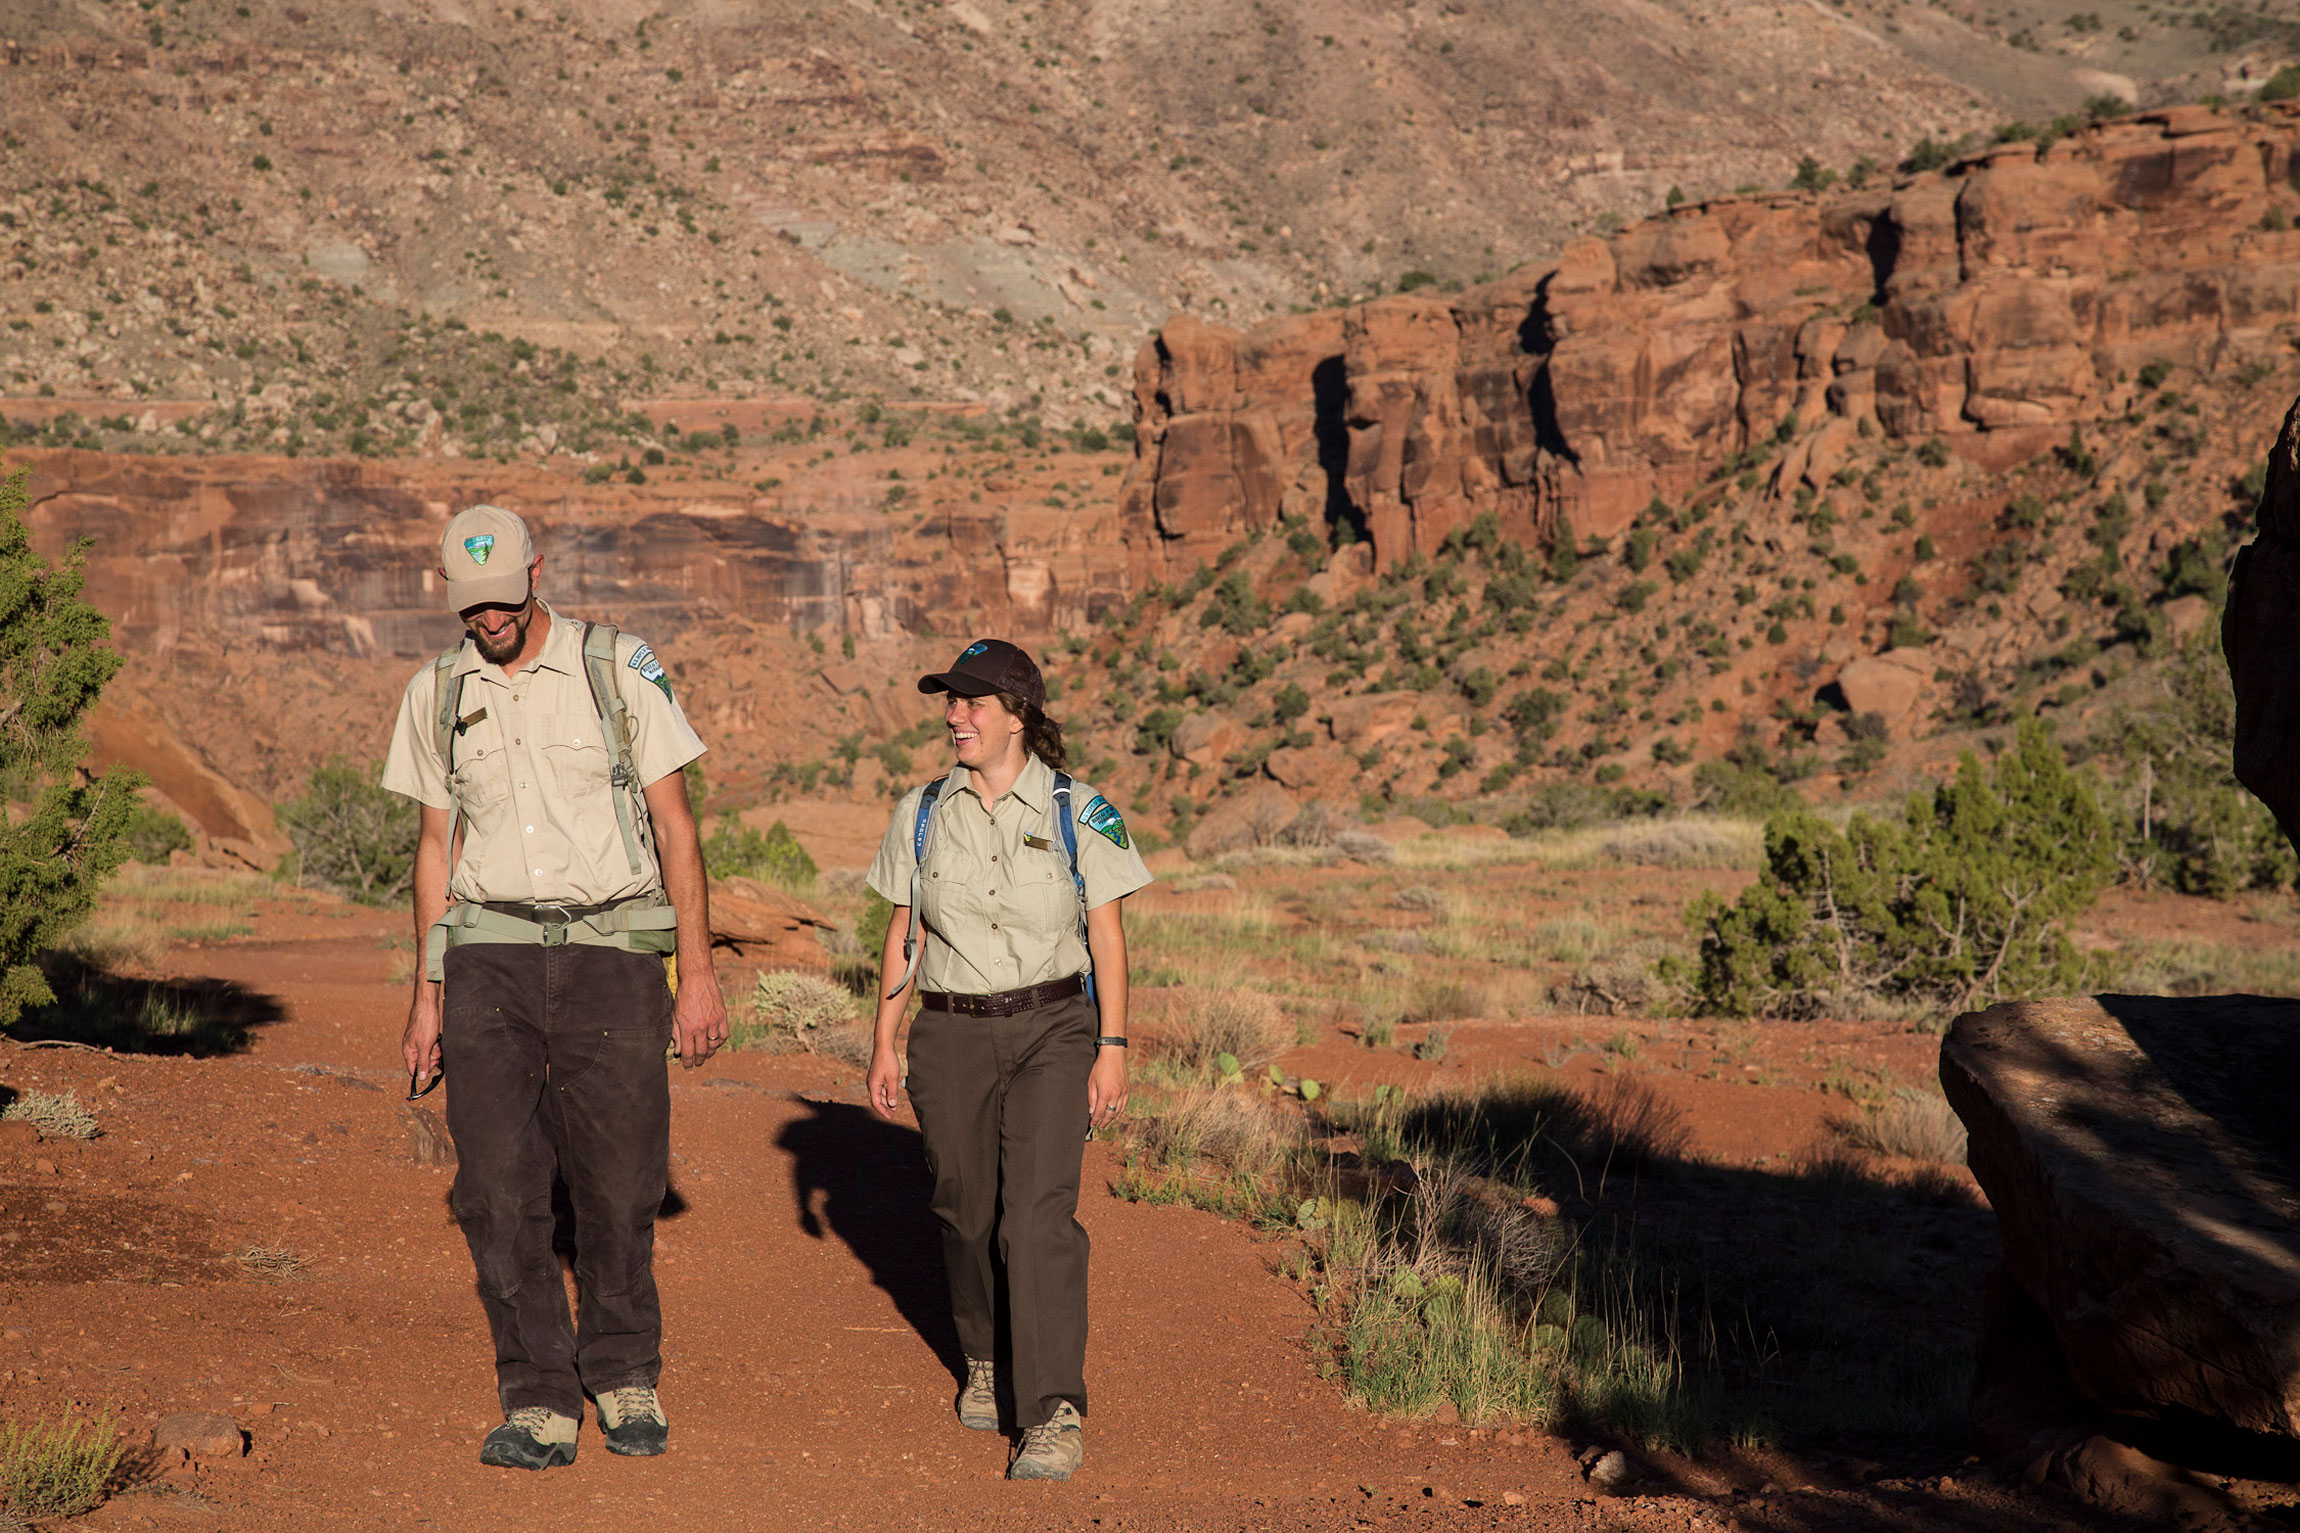 Two Bureau of Land Management rangers walk through the Dominguez-Escalante National Conservation Area, which is on Colorado's Western Slope, south of Grand Junction.